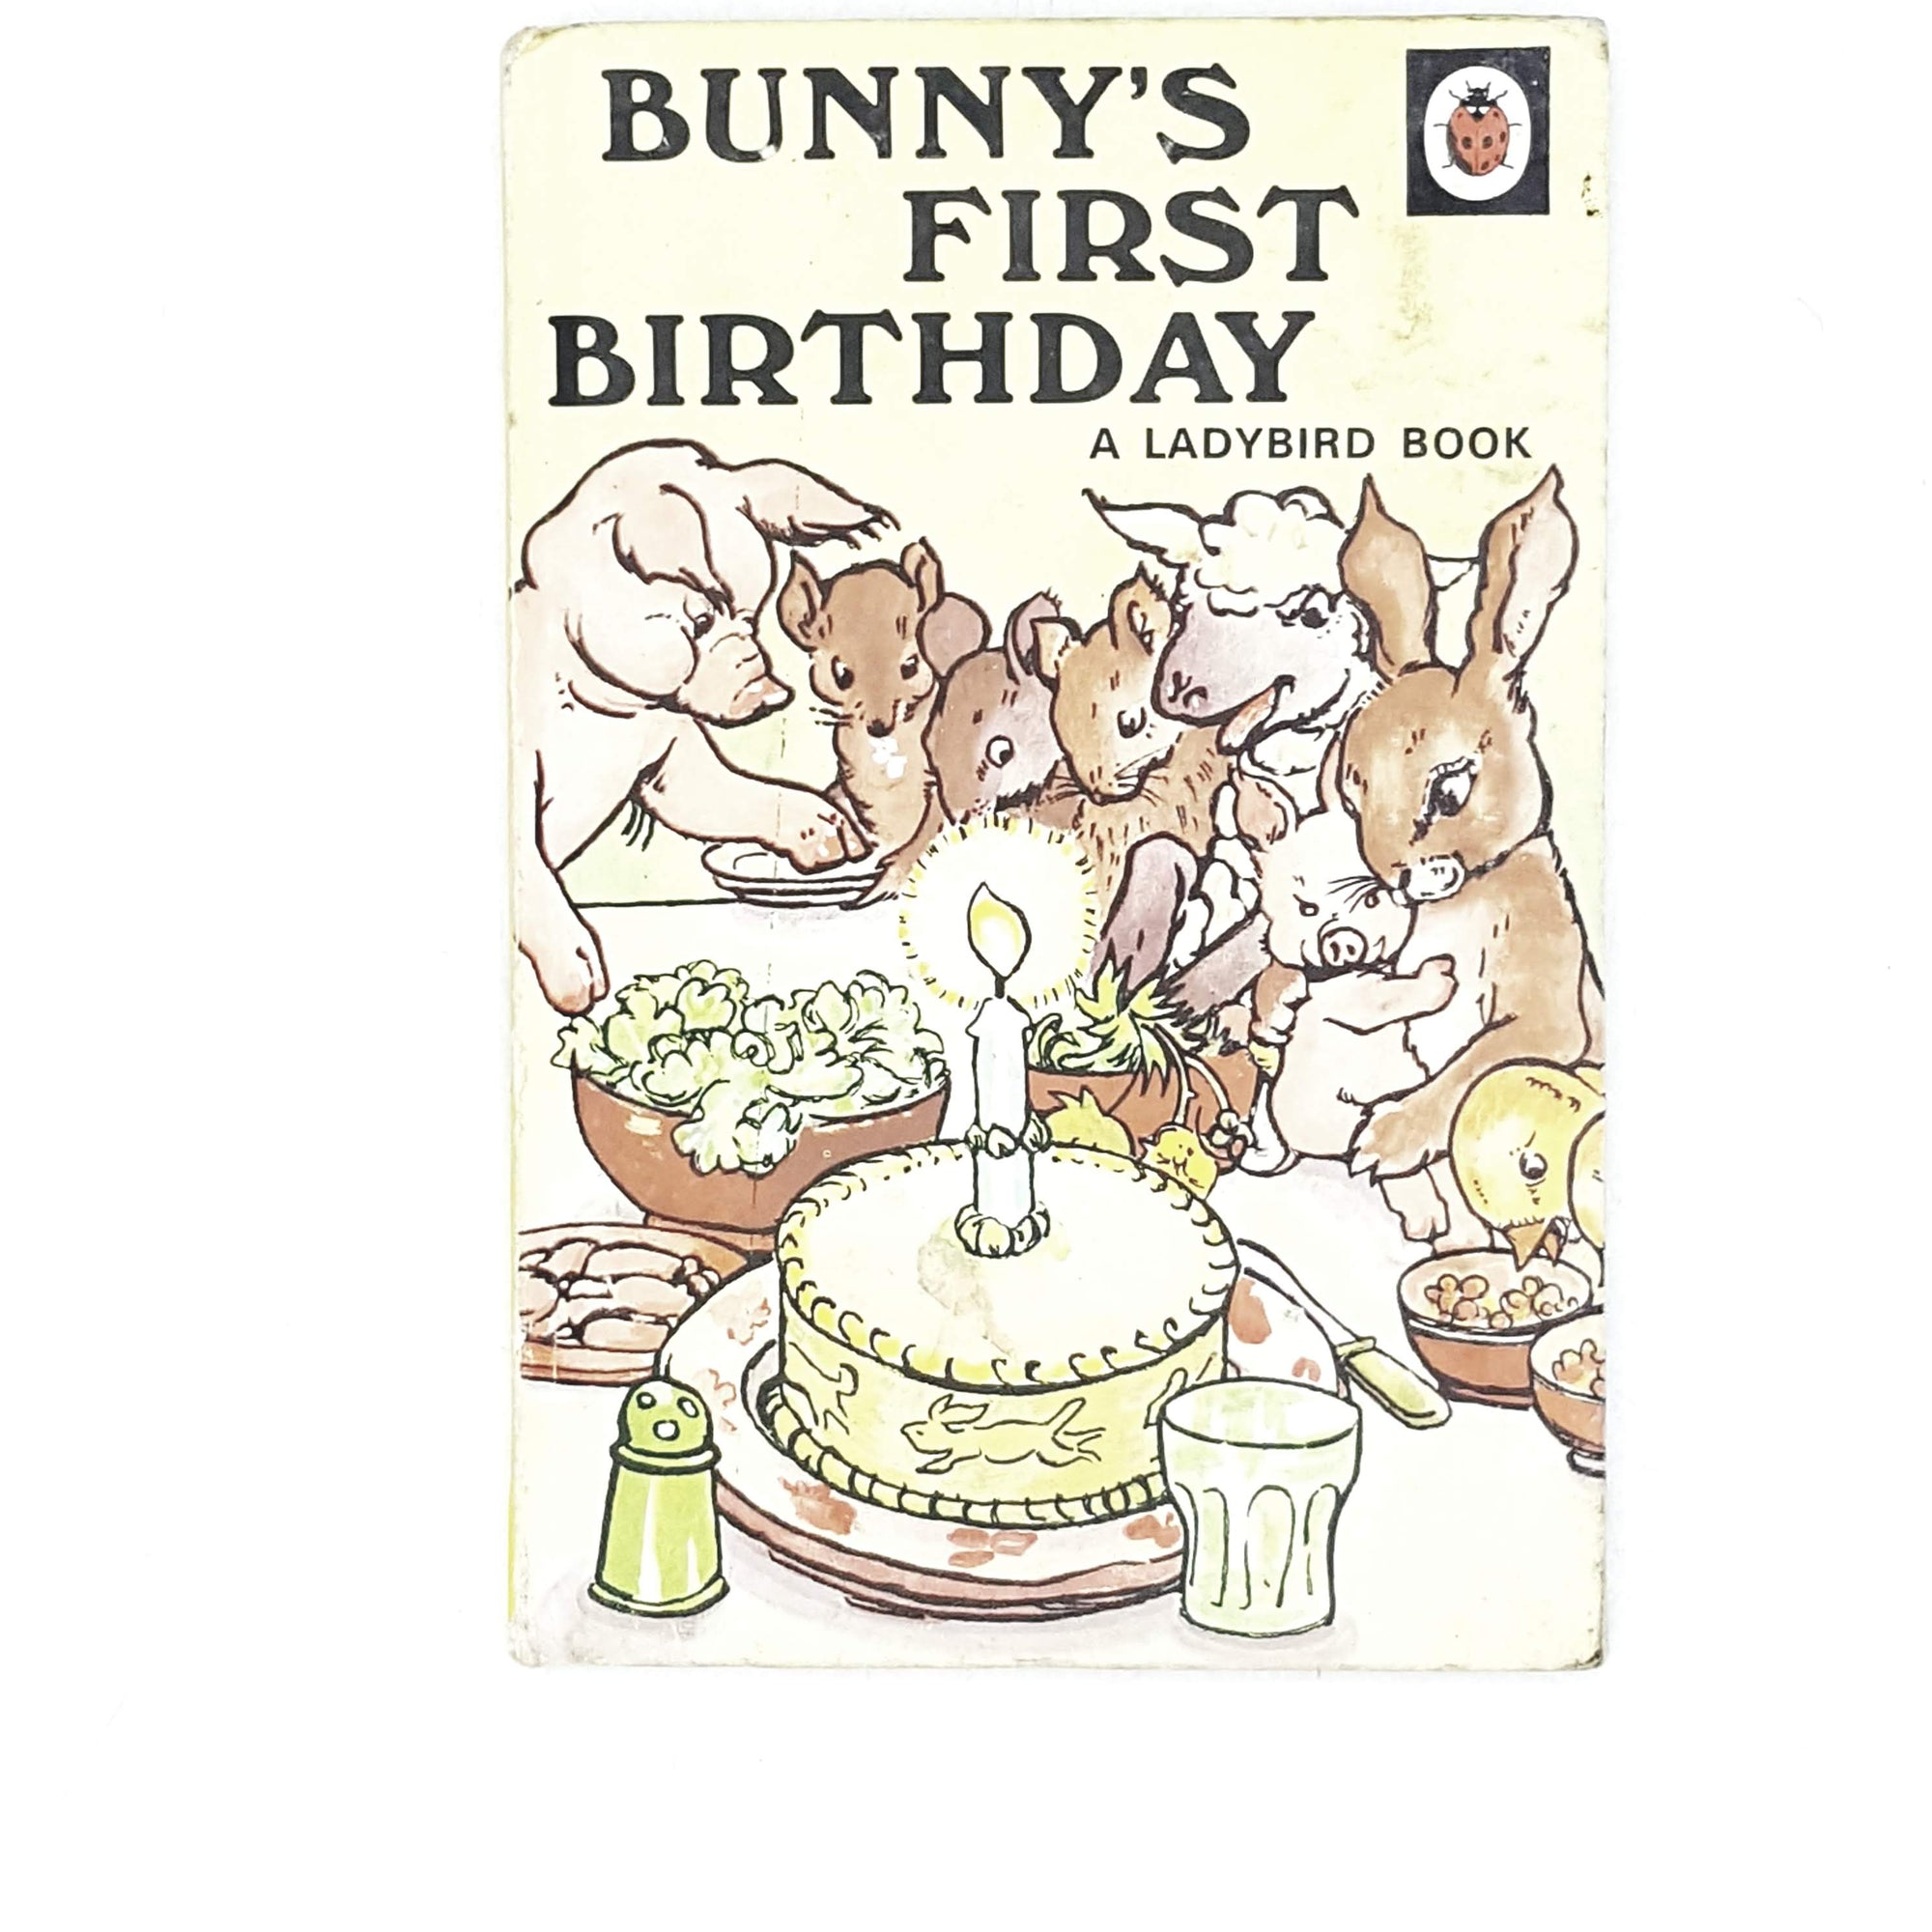 Vintage Ladybird Fiction: Bunny's First Birthday 1950